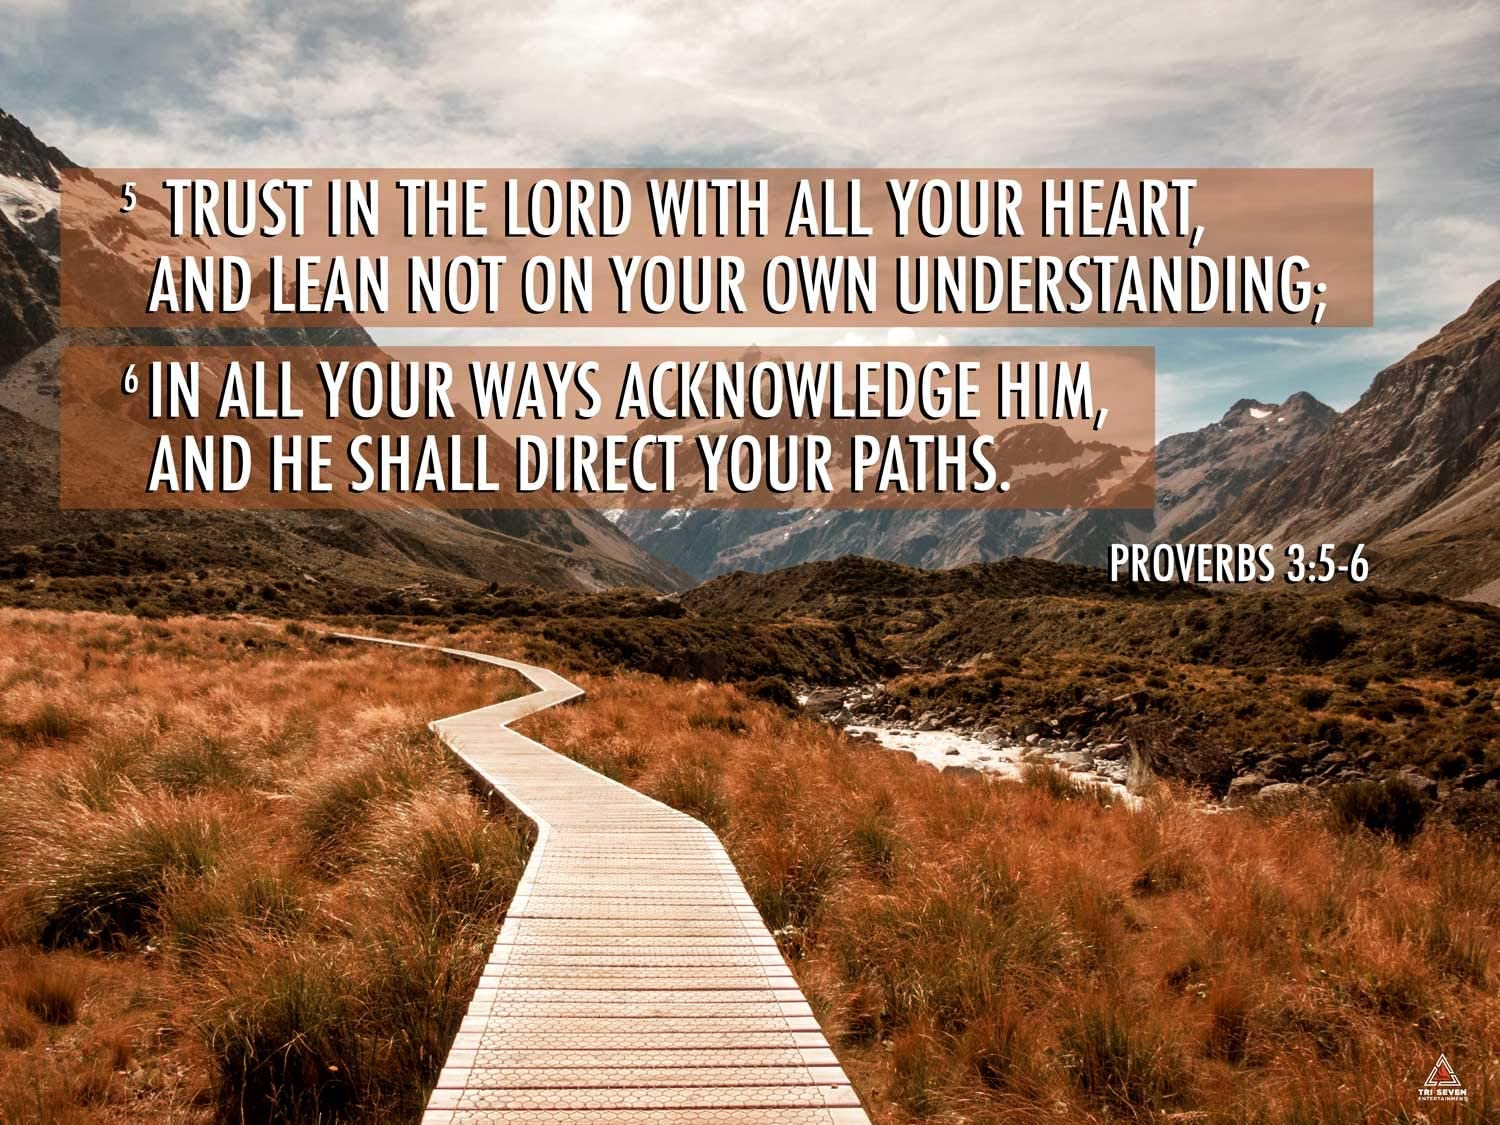 Amazon.com: Proverbs 3:5-6 Poster Trust in the Lord Bible Verse Quote Wall  Art (24x18): Posters & Prints